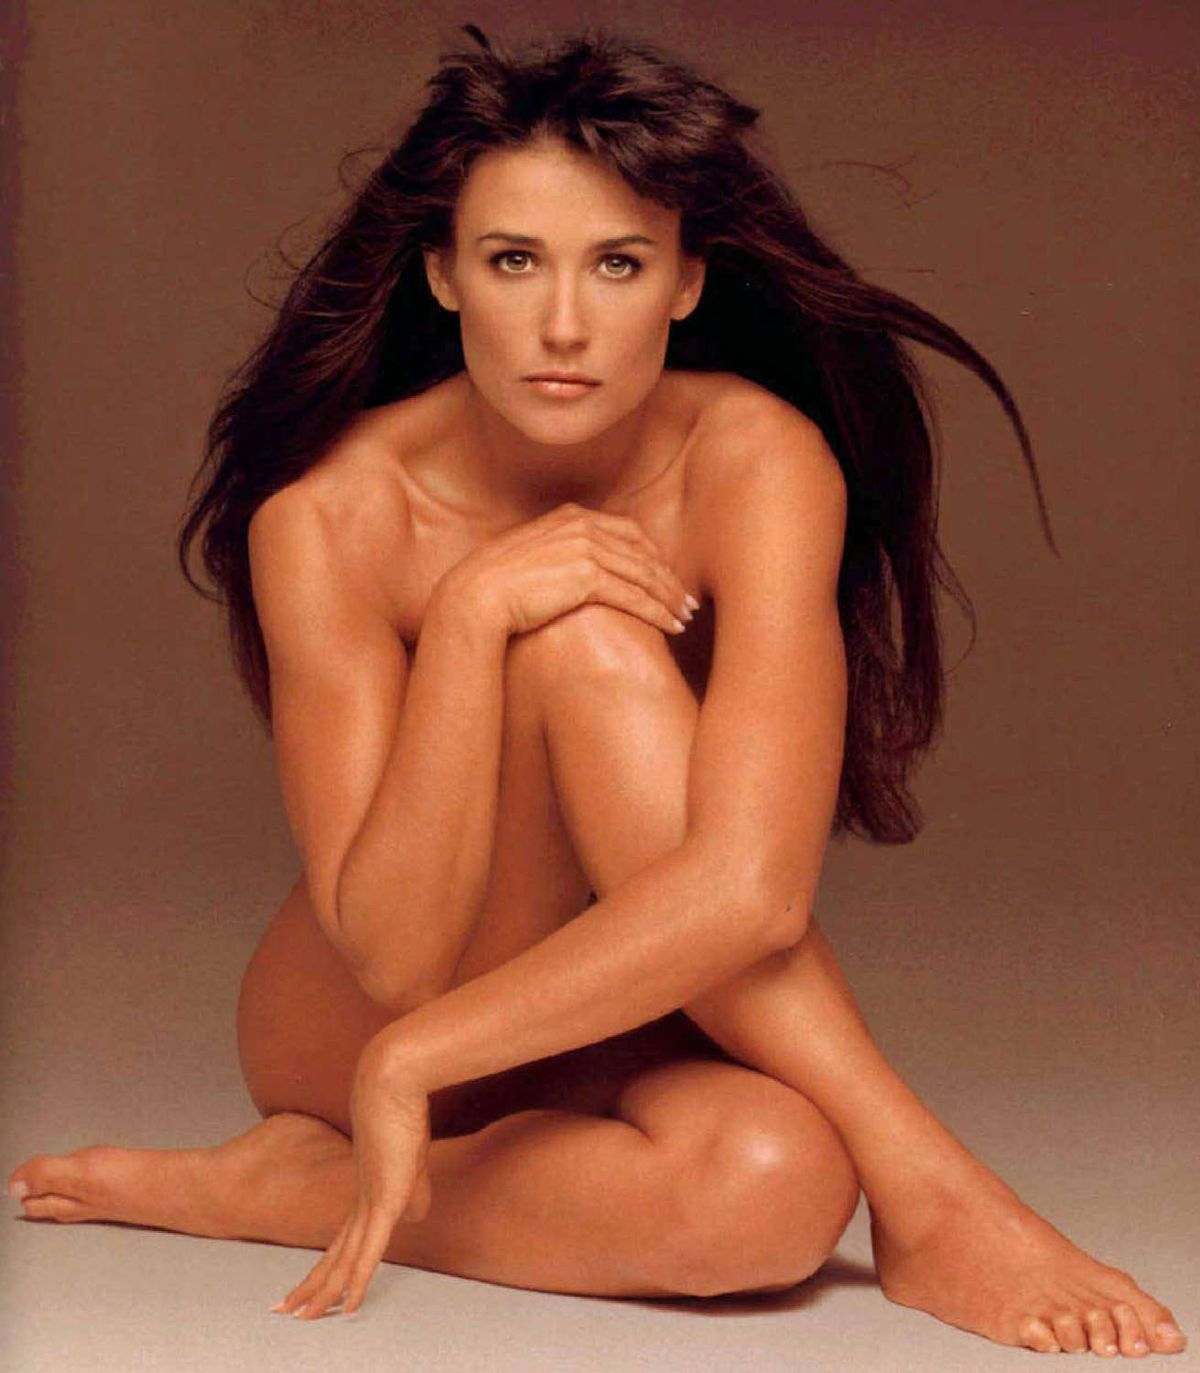 Demi Moore in a publicity image for the film Striptease (1996).